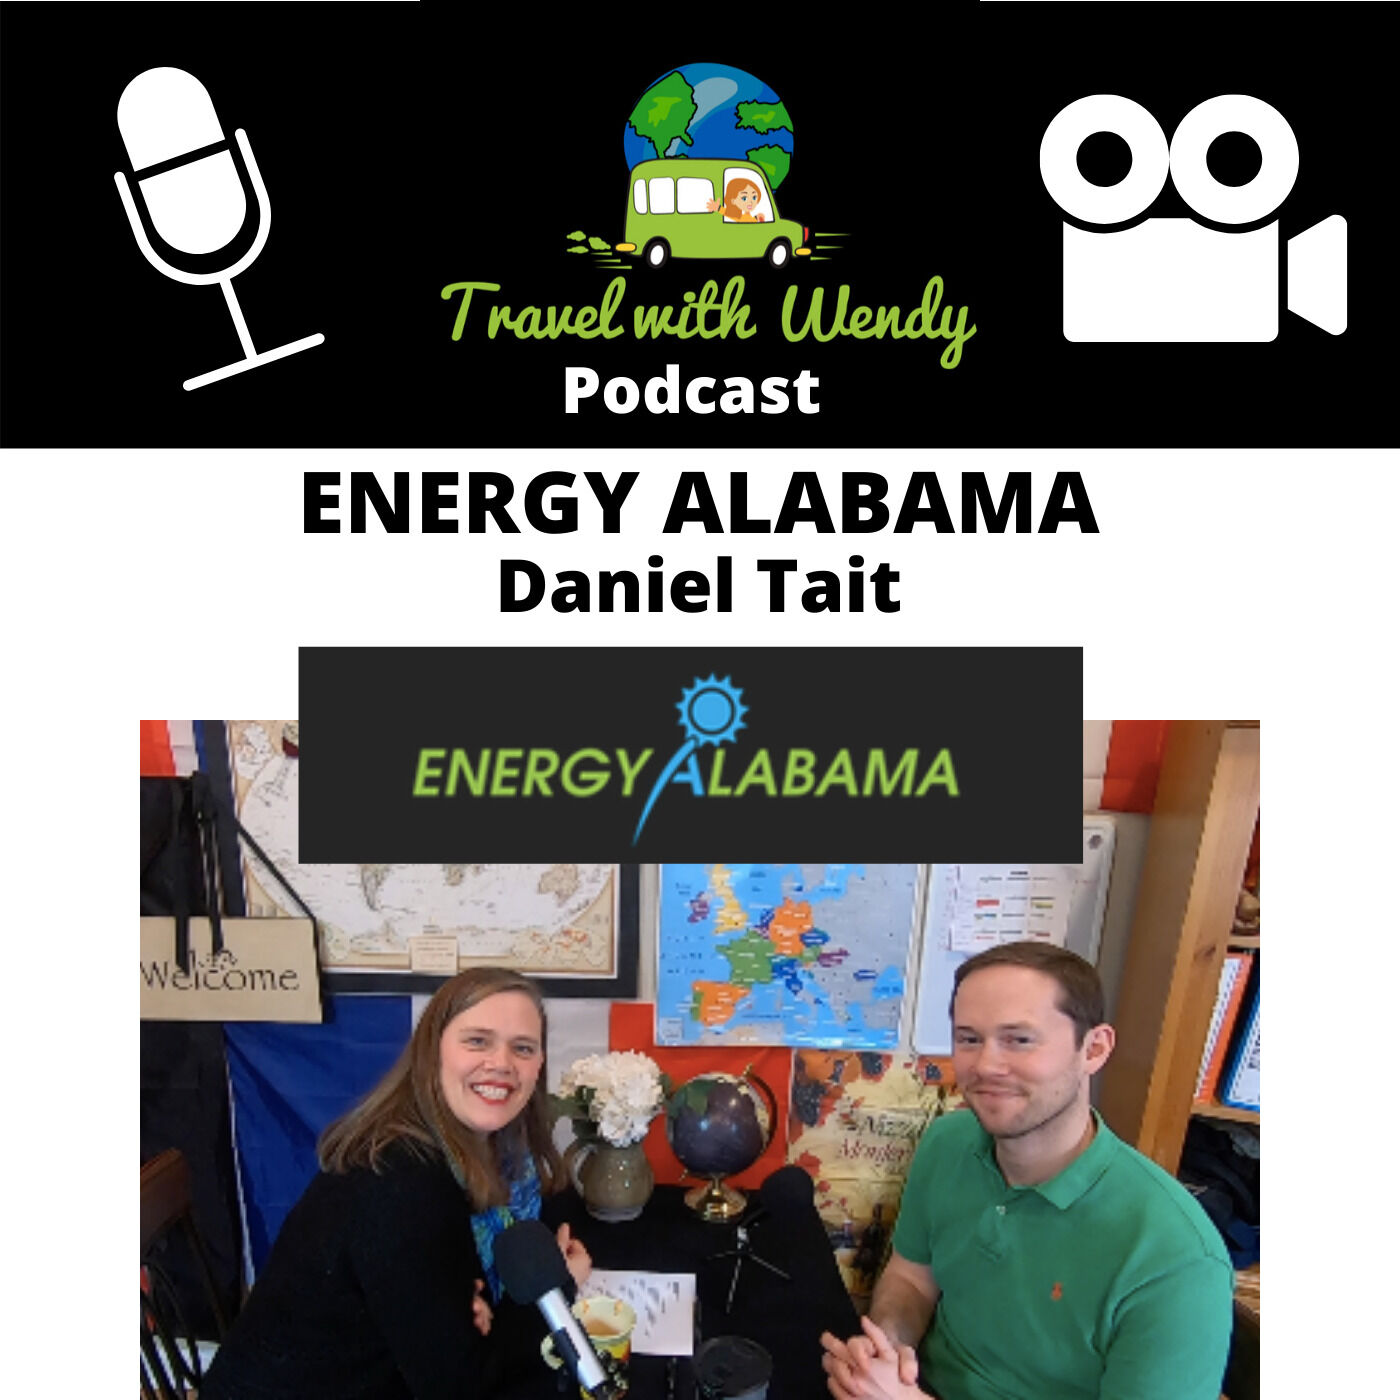 #6 Energy Alabama - Daniel Tait